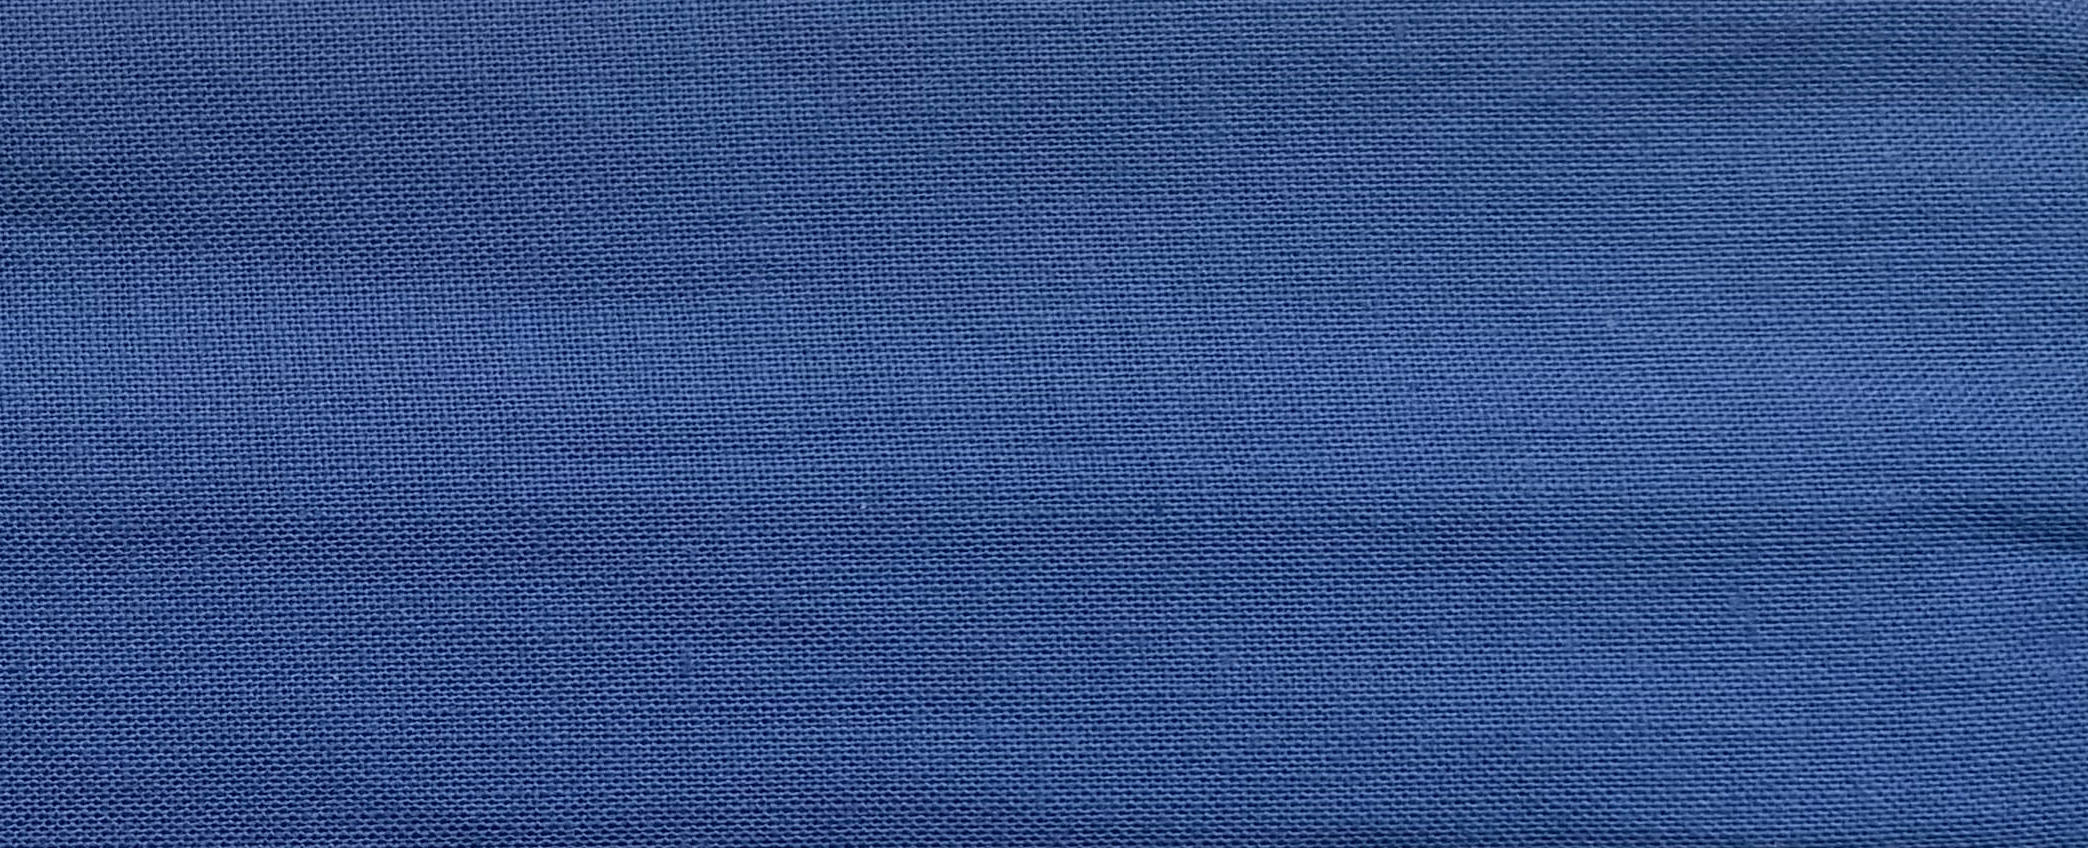 Cooling Tie - 617 Sky Blue Solid